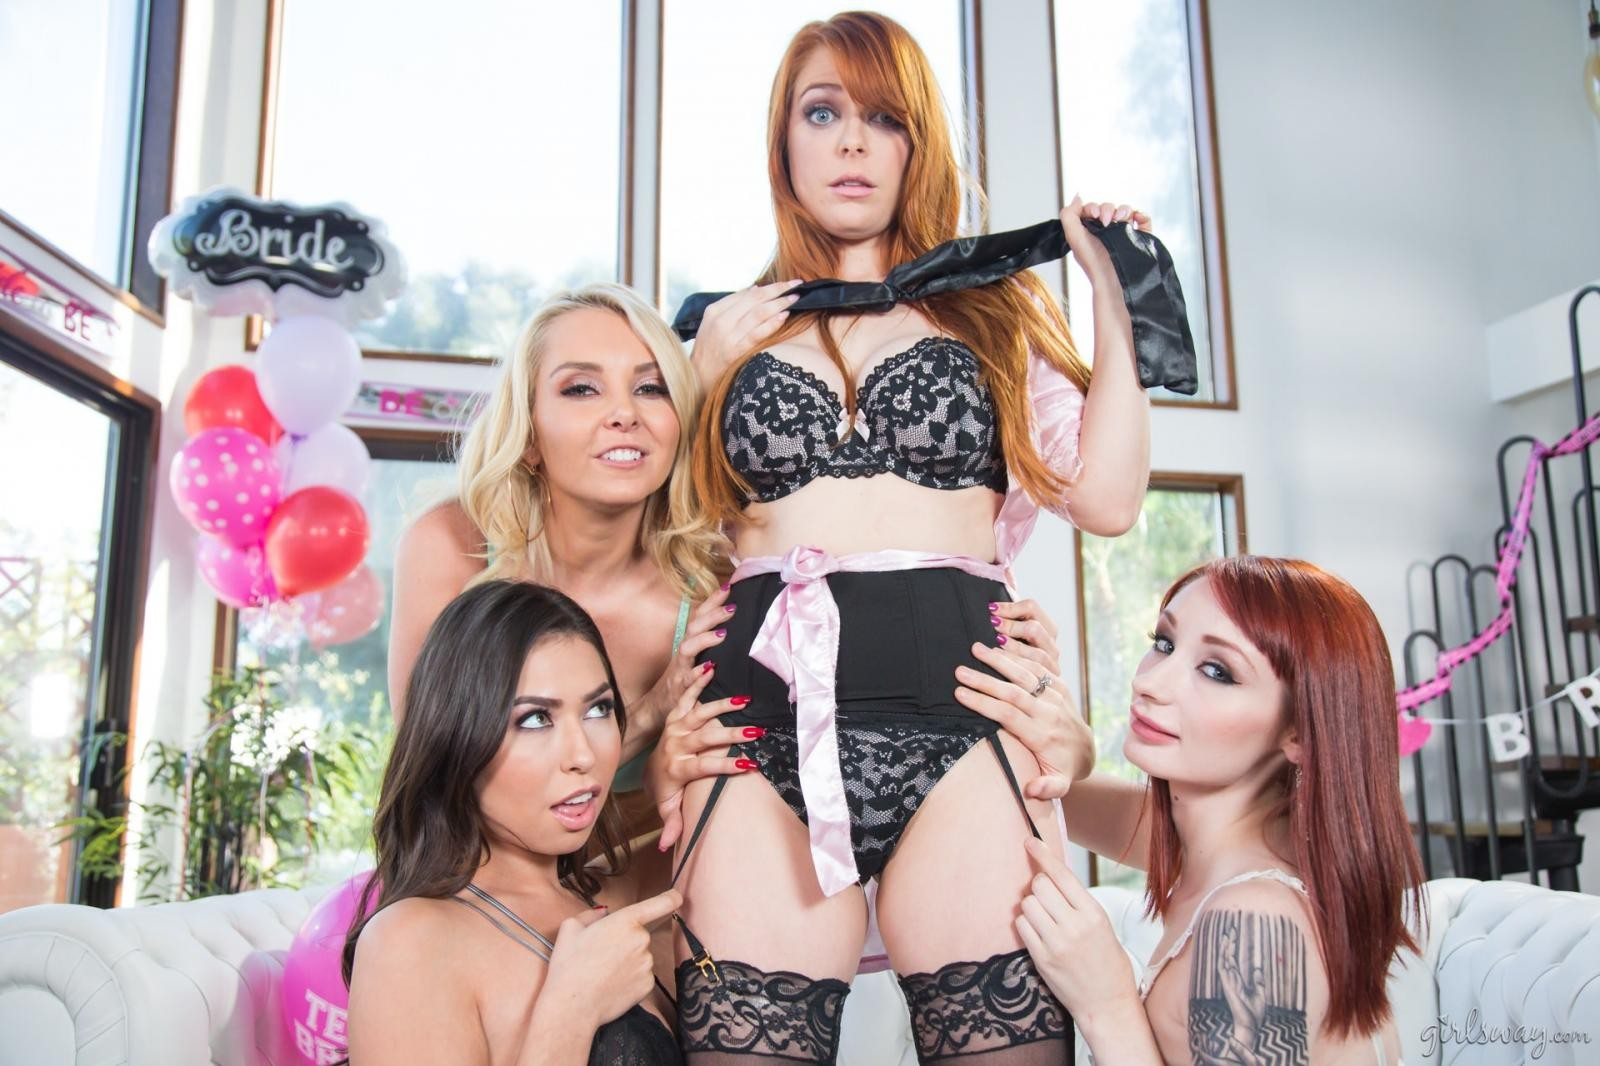 Violet Monroe: Strap-On Stories: Gangbang Bachelorette - 1